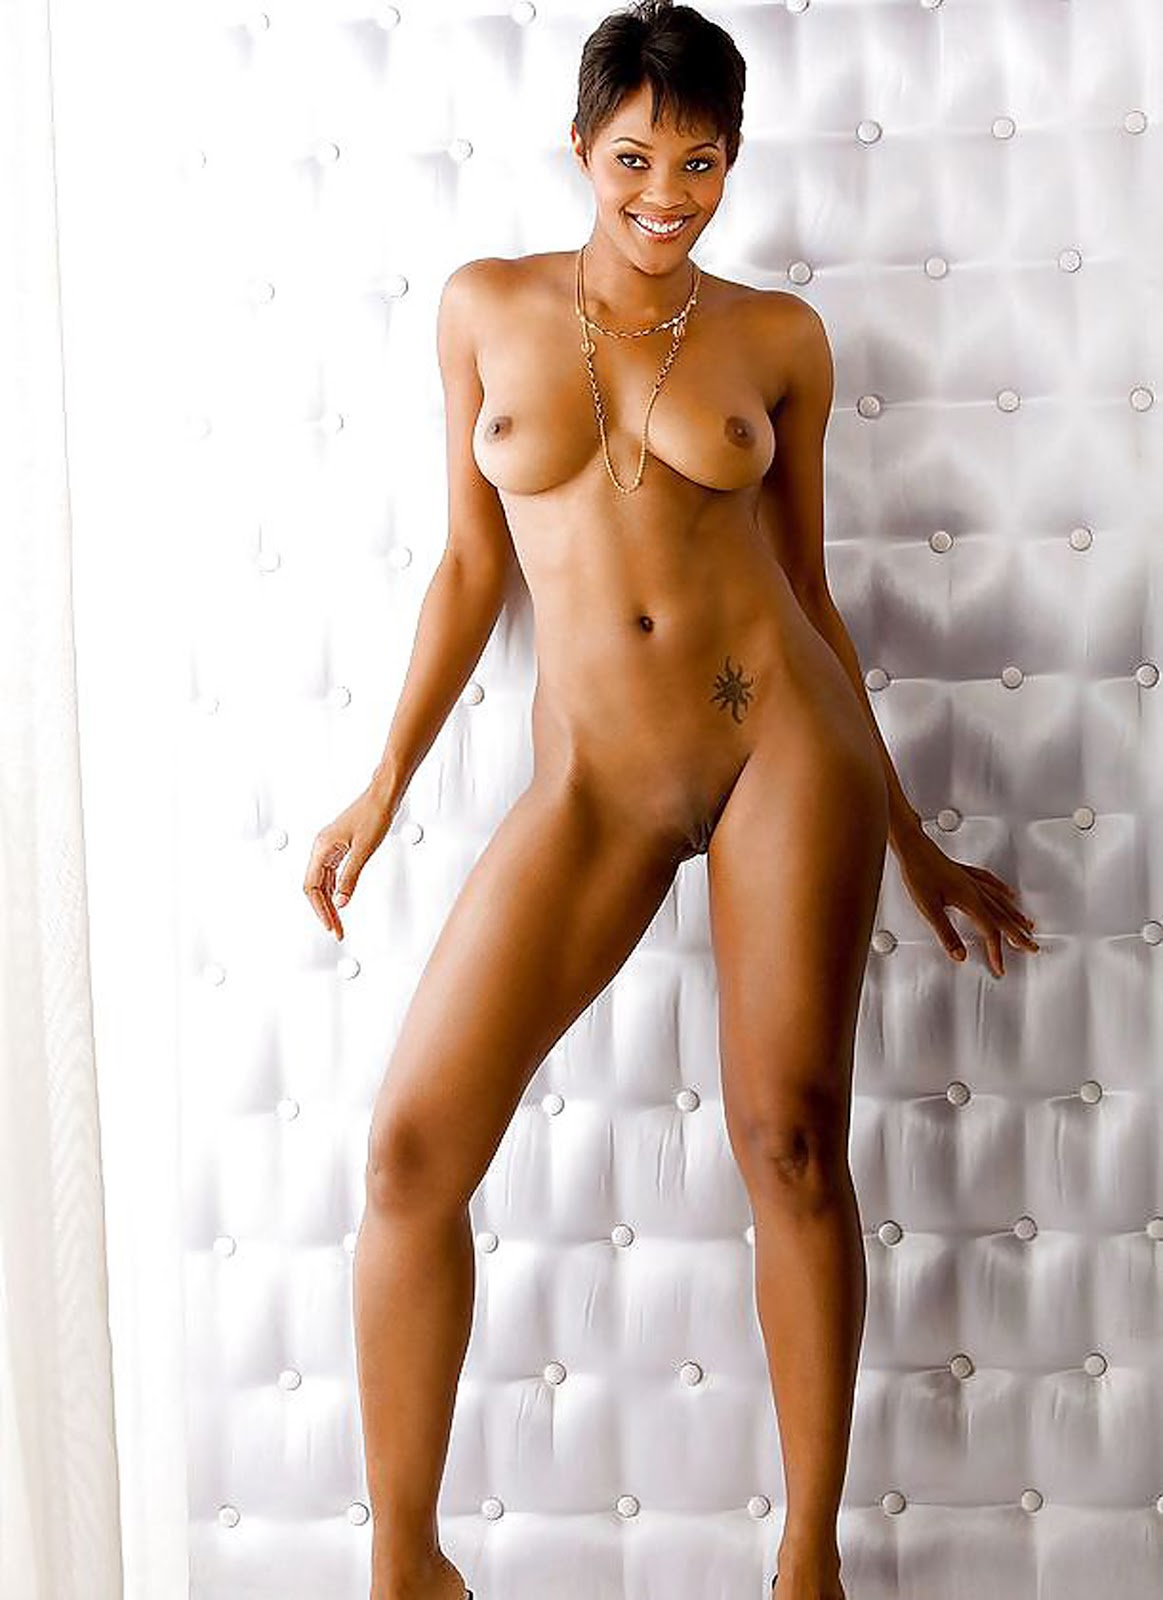 Black woman nude